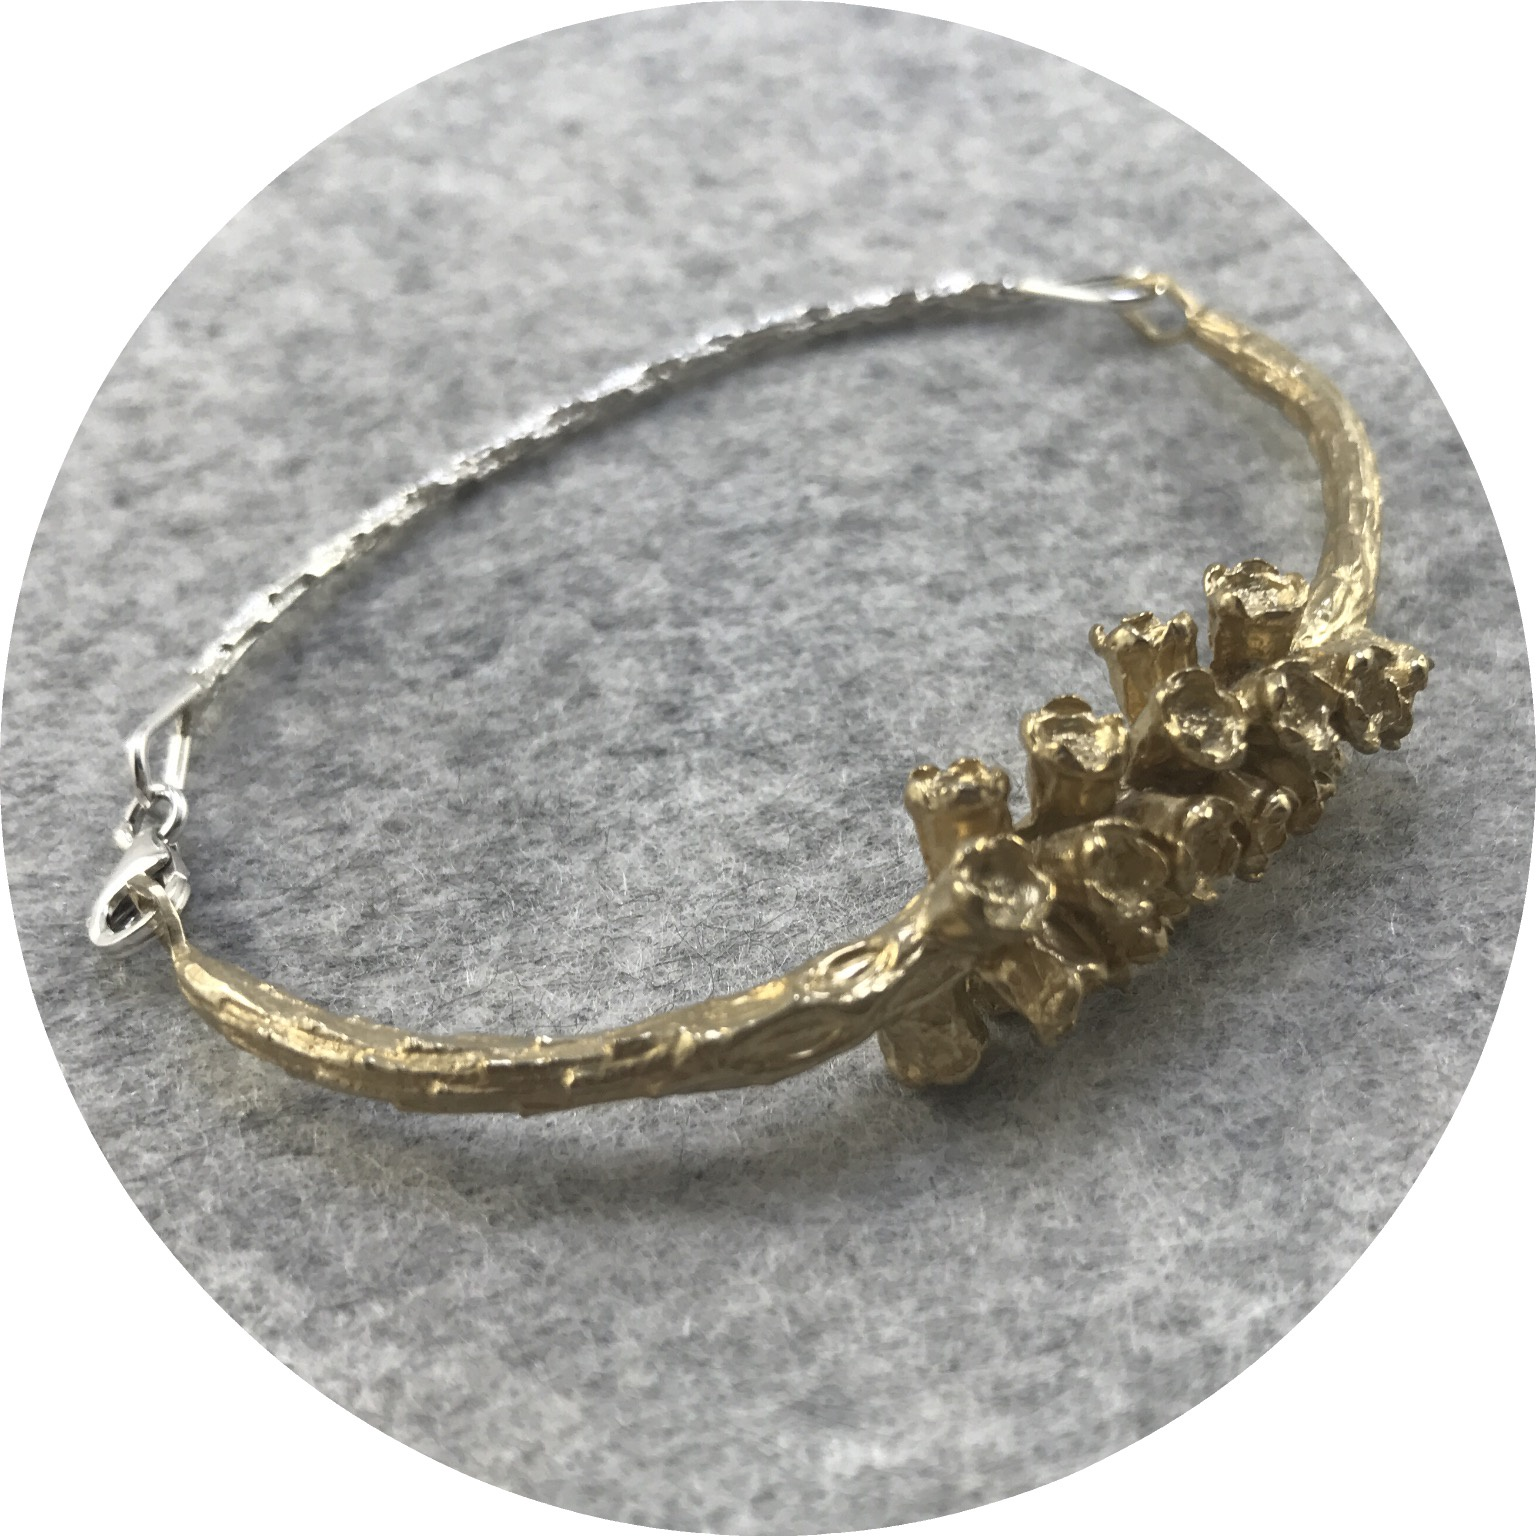 Abby Seymour- Melaleuca Bracelet. Brass and Silver.